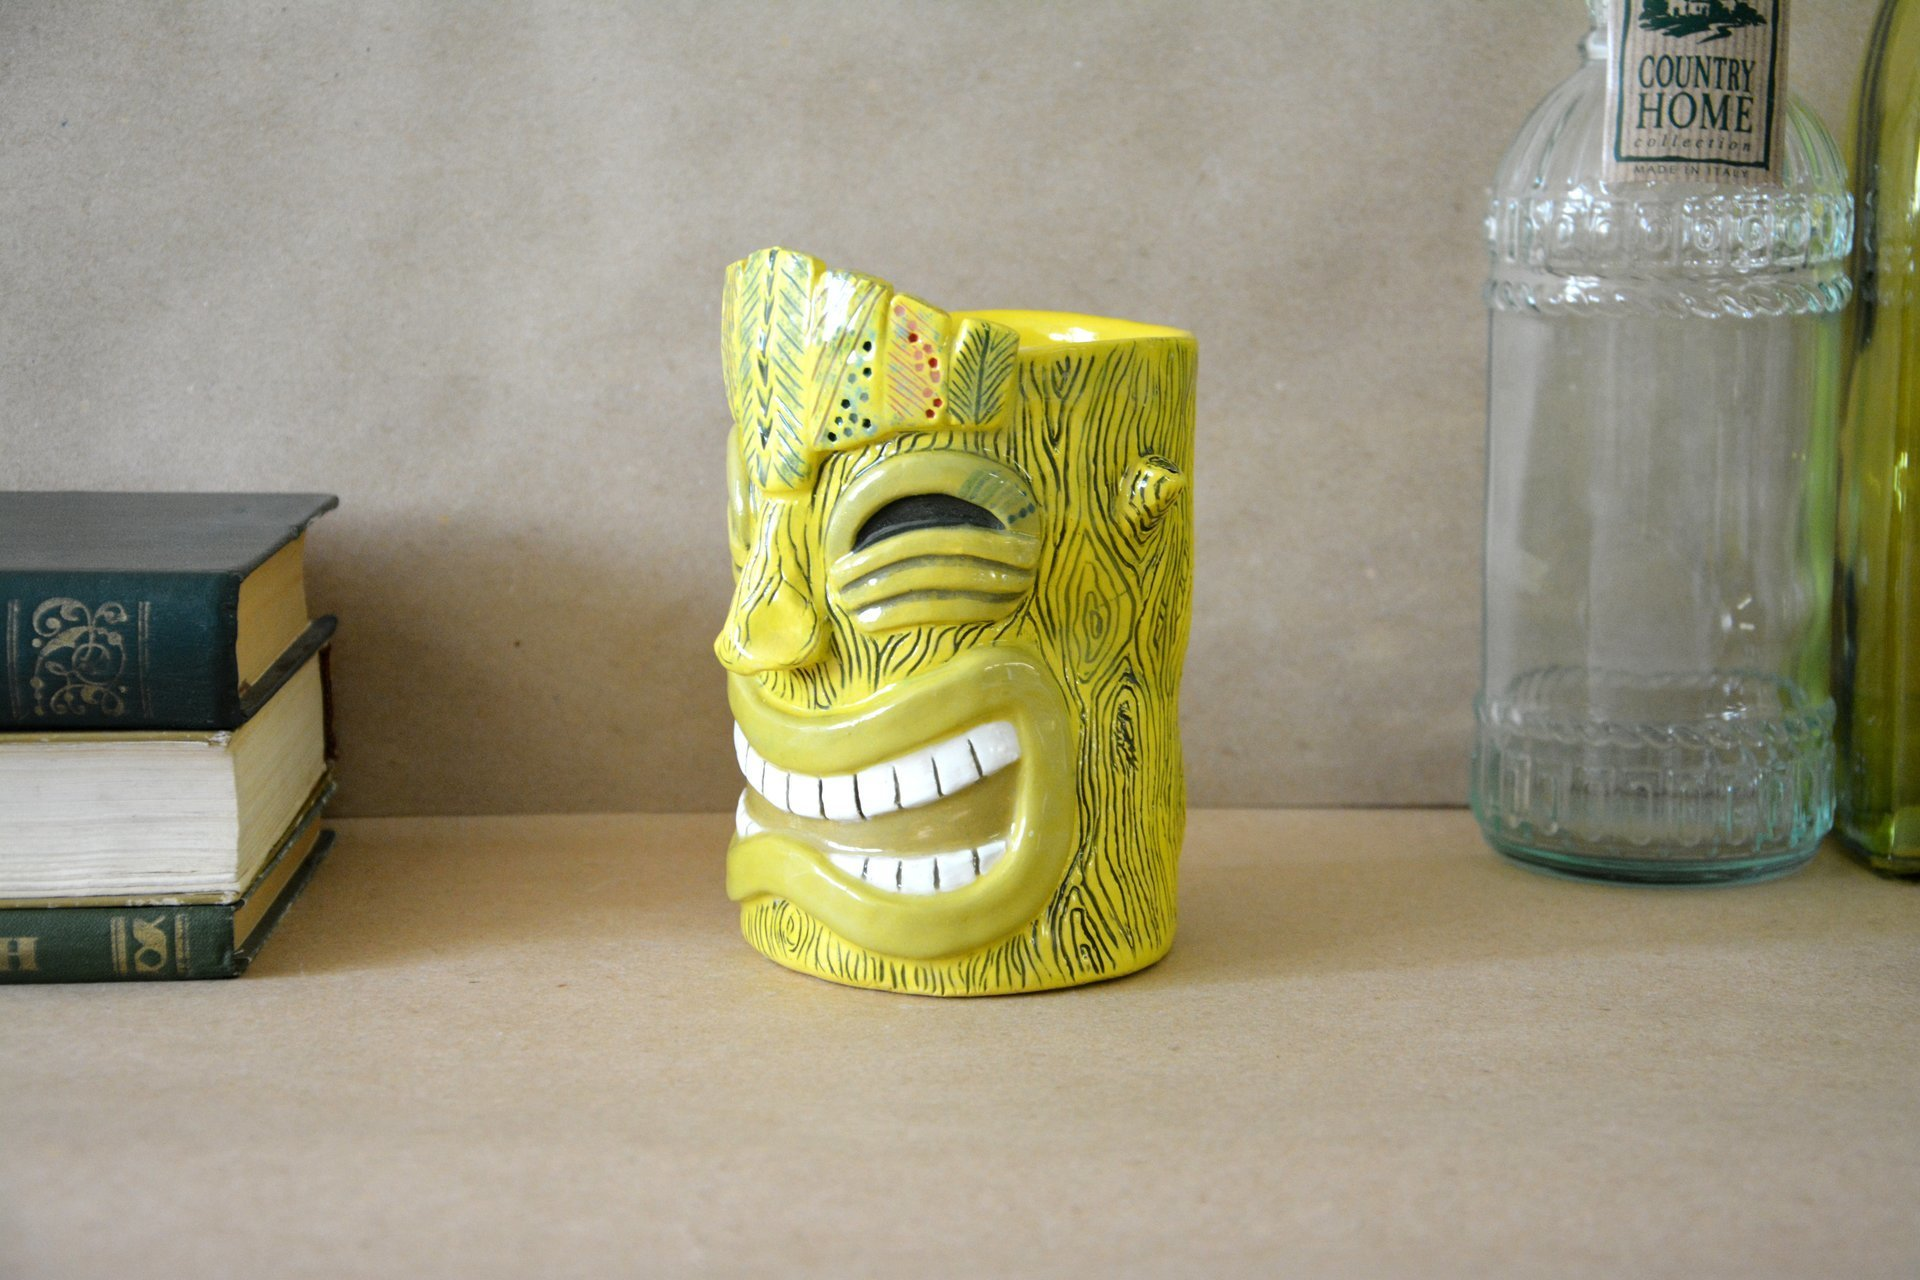 Glass of Tiki yellow big, height - 14 cm, volume - 0,6 l, photo 5 of 7.